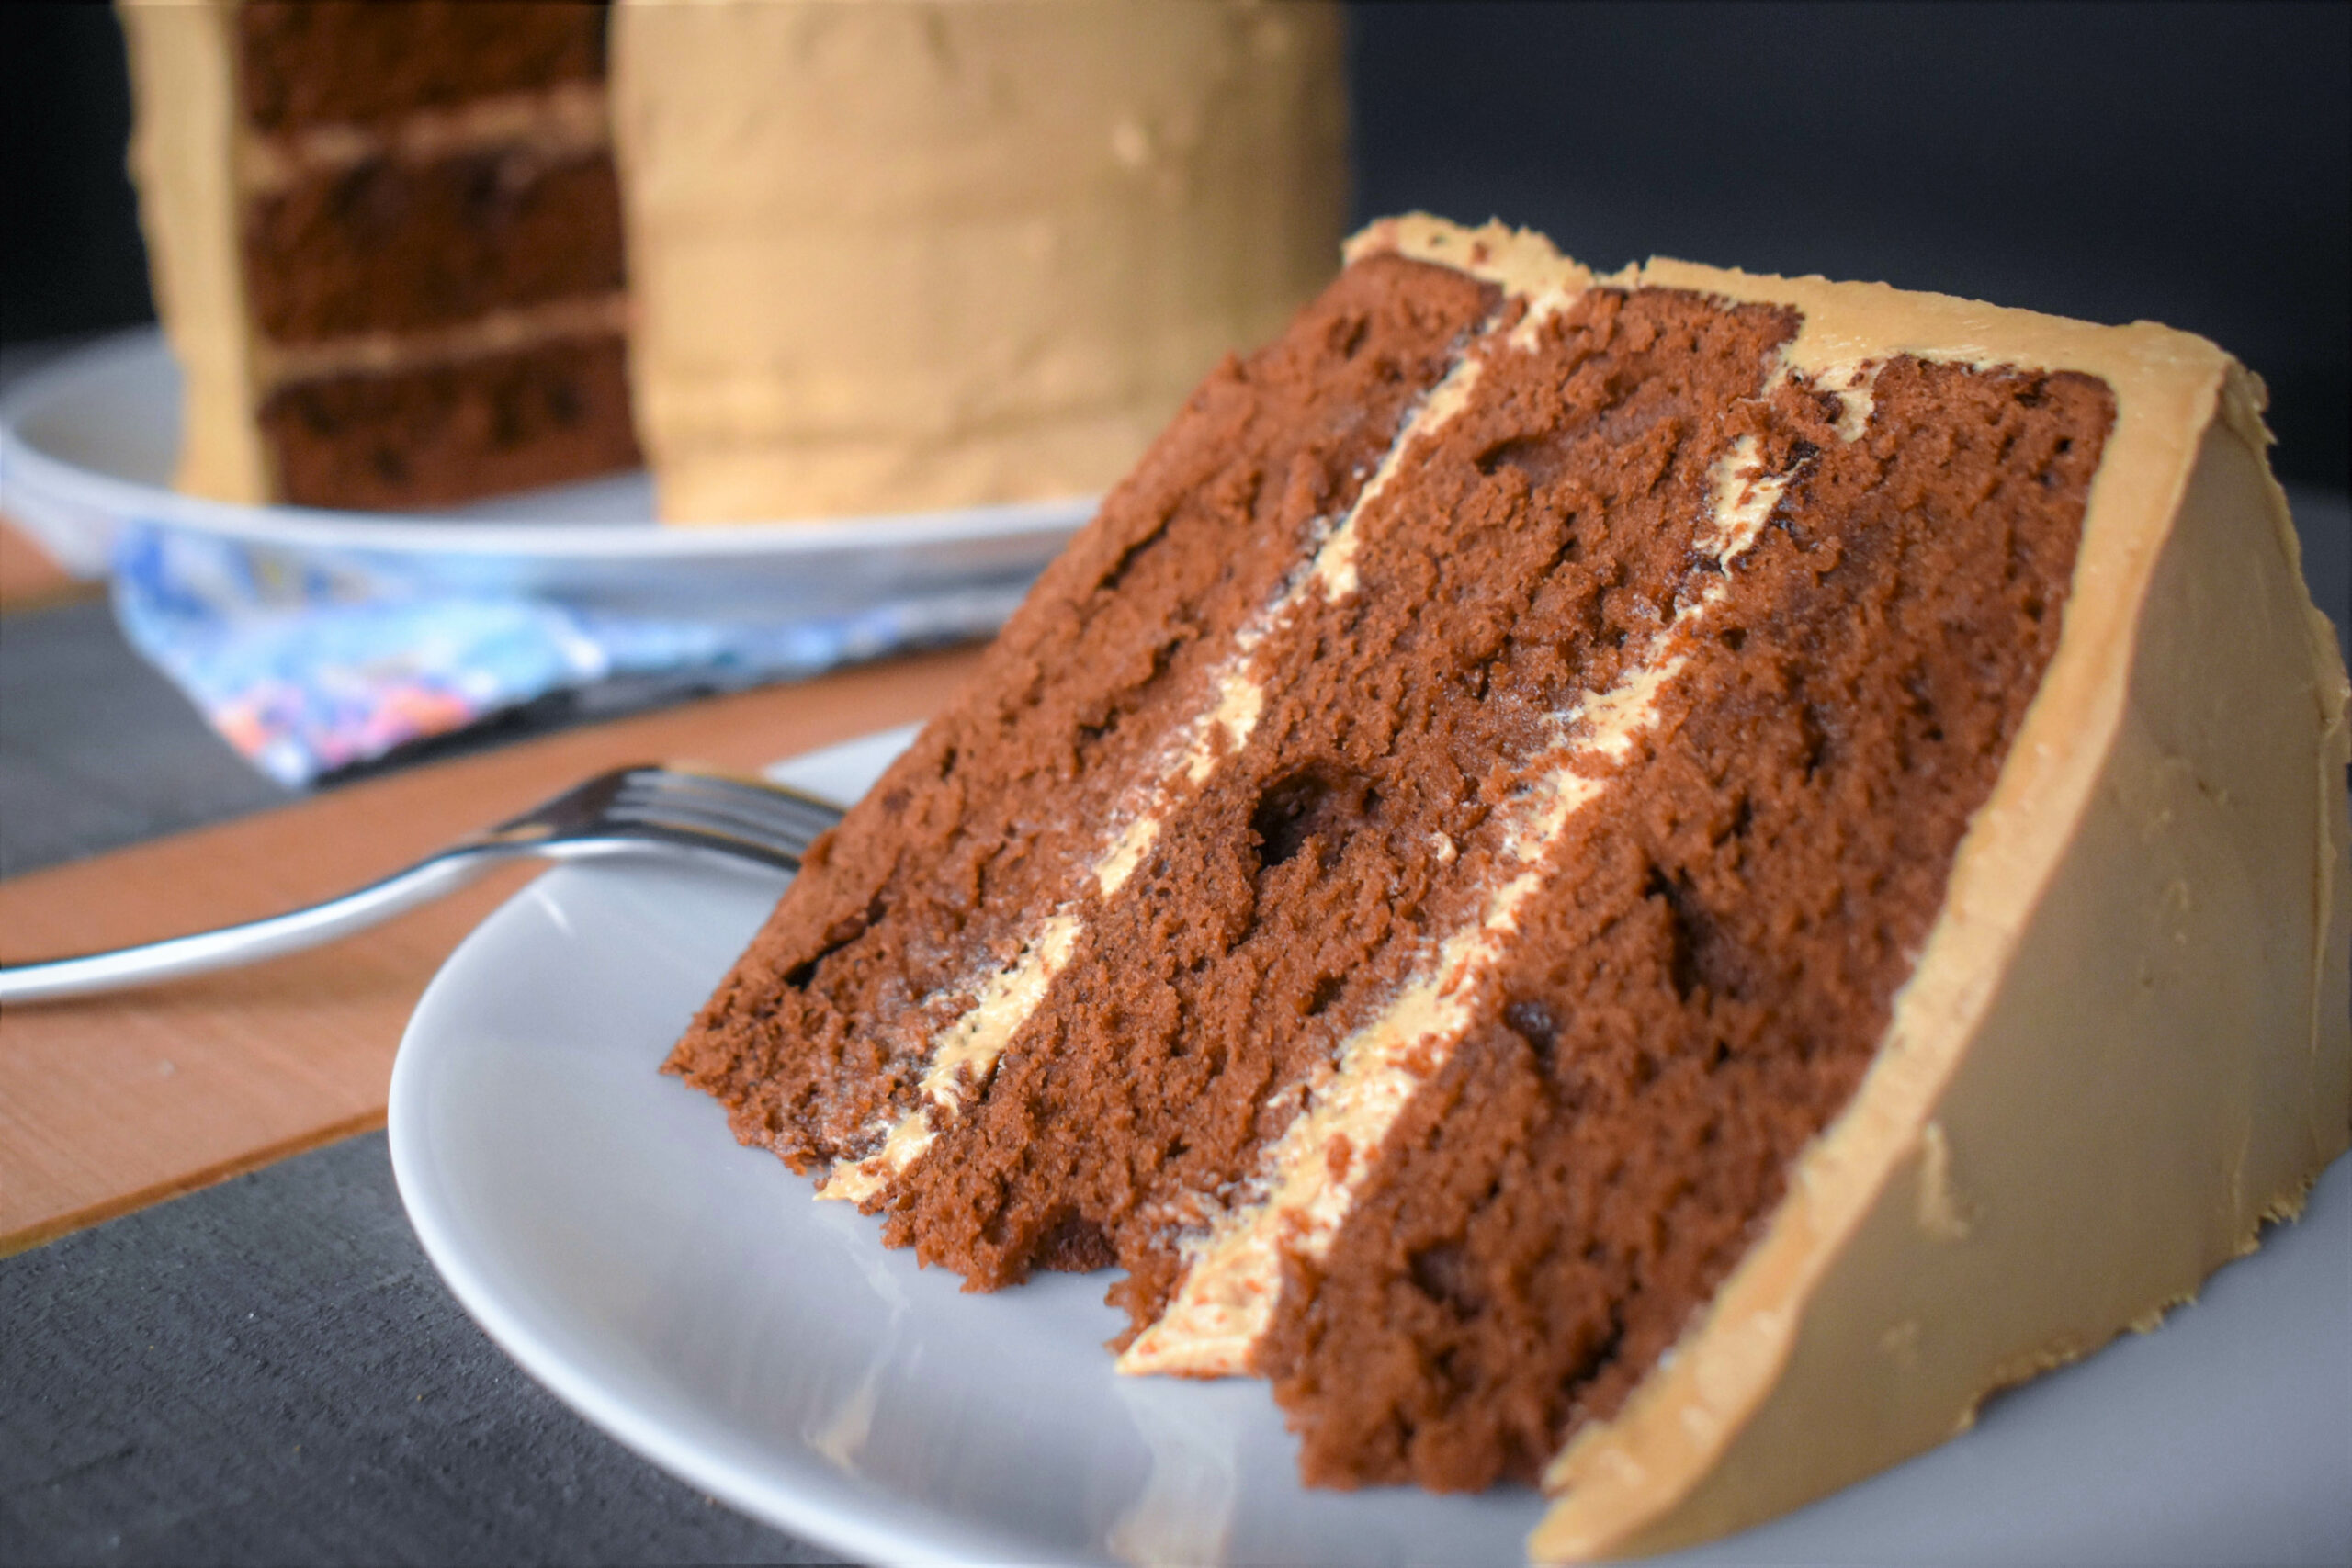 Chocolate Cake Recipe Image